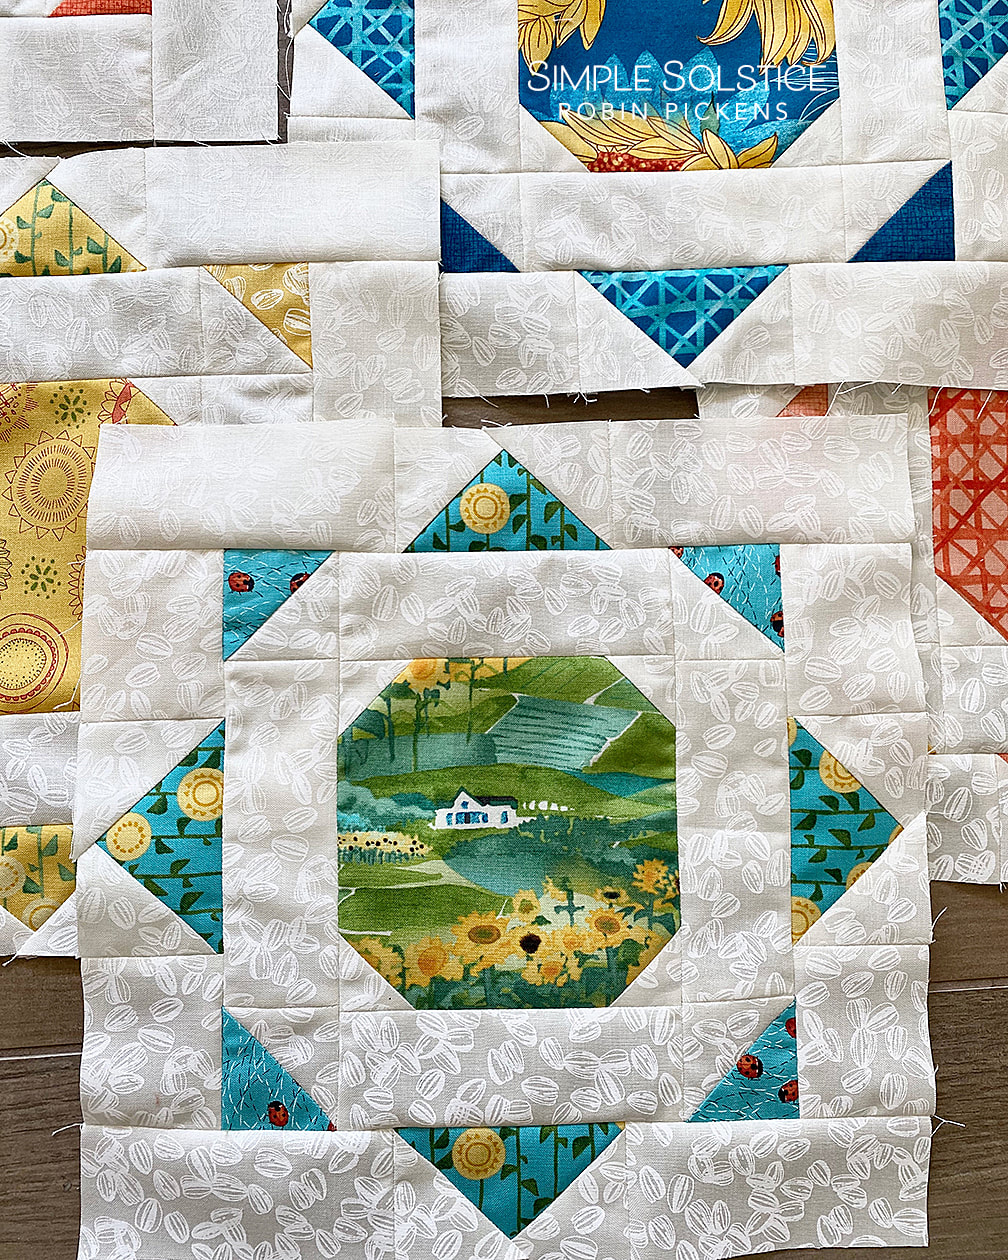 Simple Solstice quilt blocks use HST, flying geese and stitch and flip.